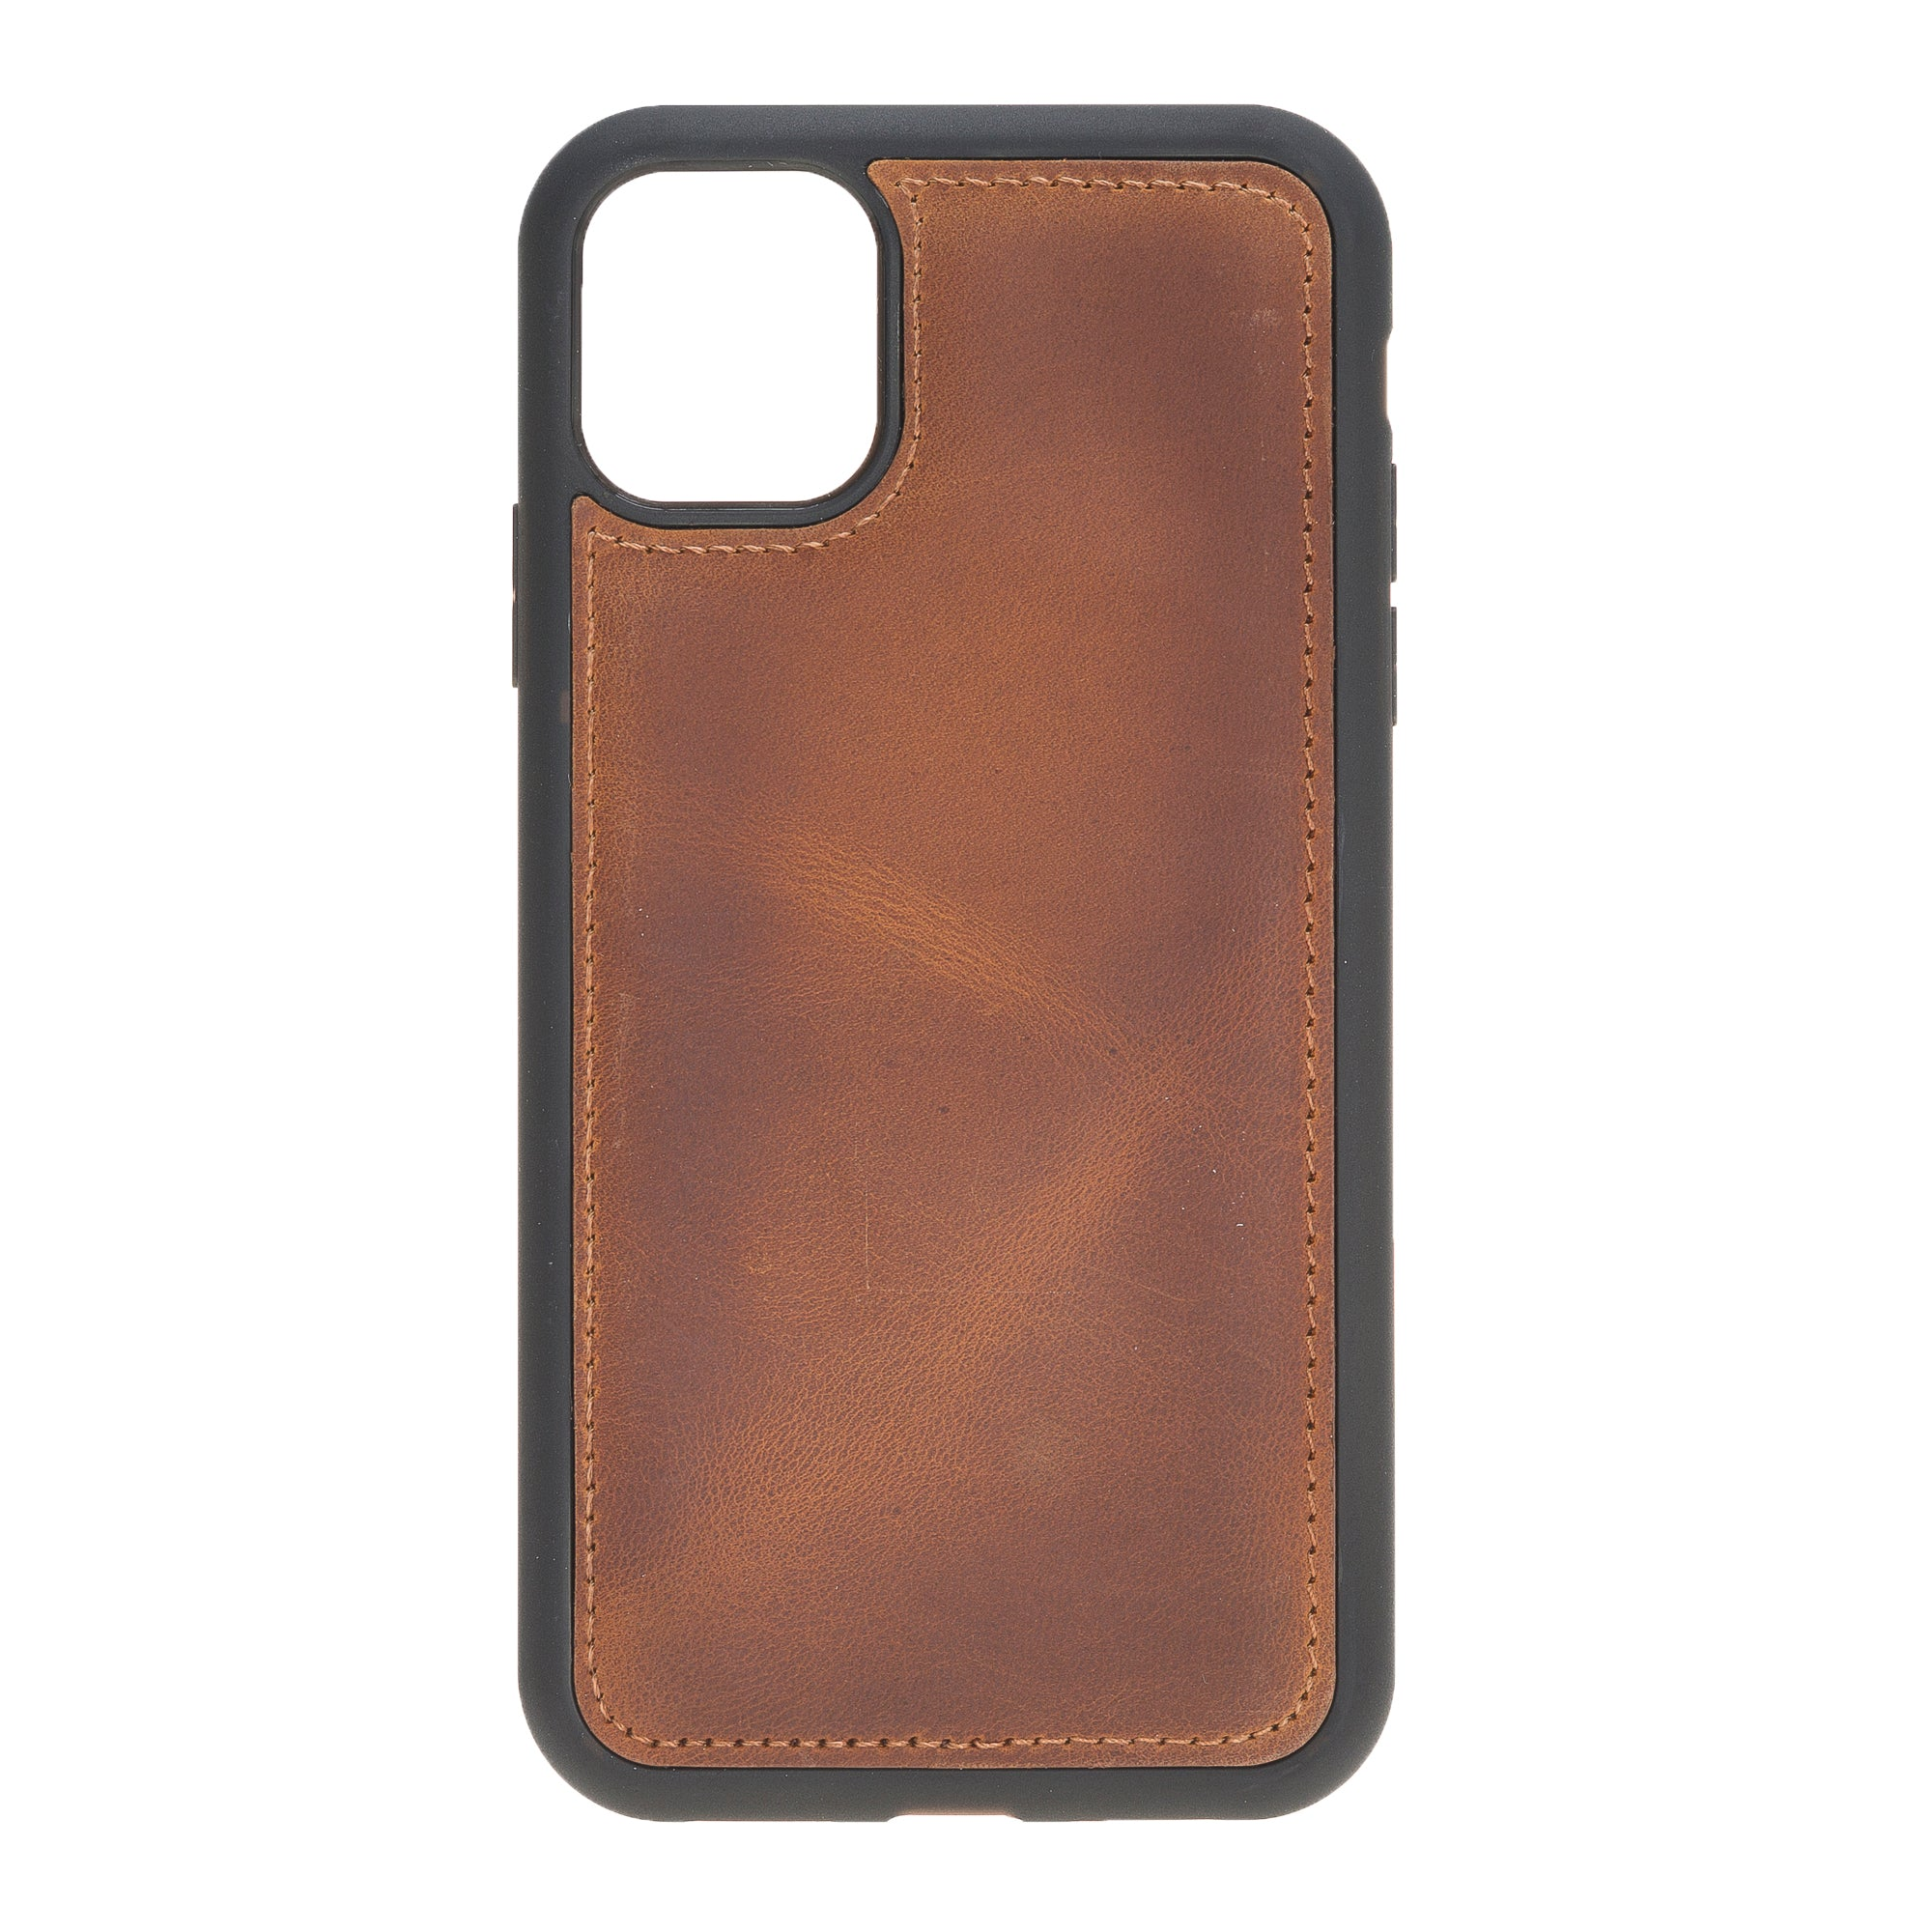 "Vintage Brown Apple iPhone 11 (6.1"") Leather Case"